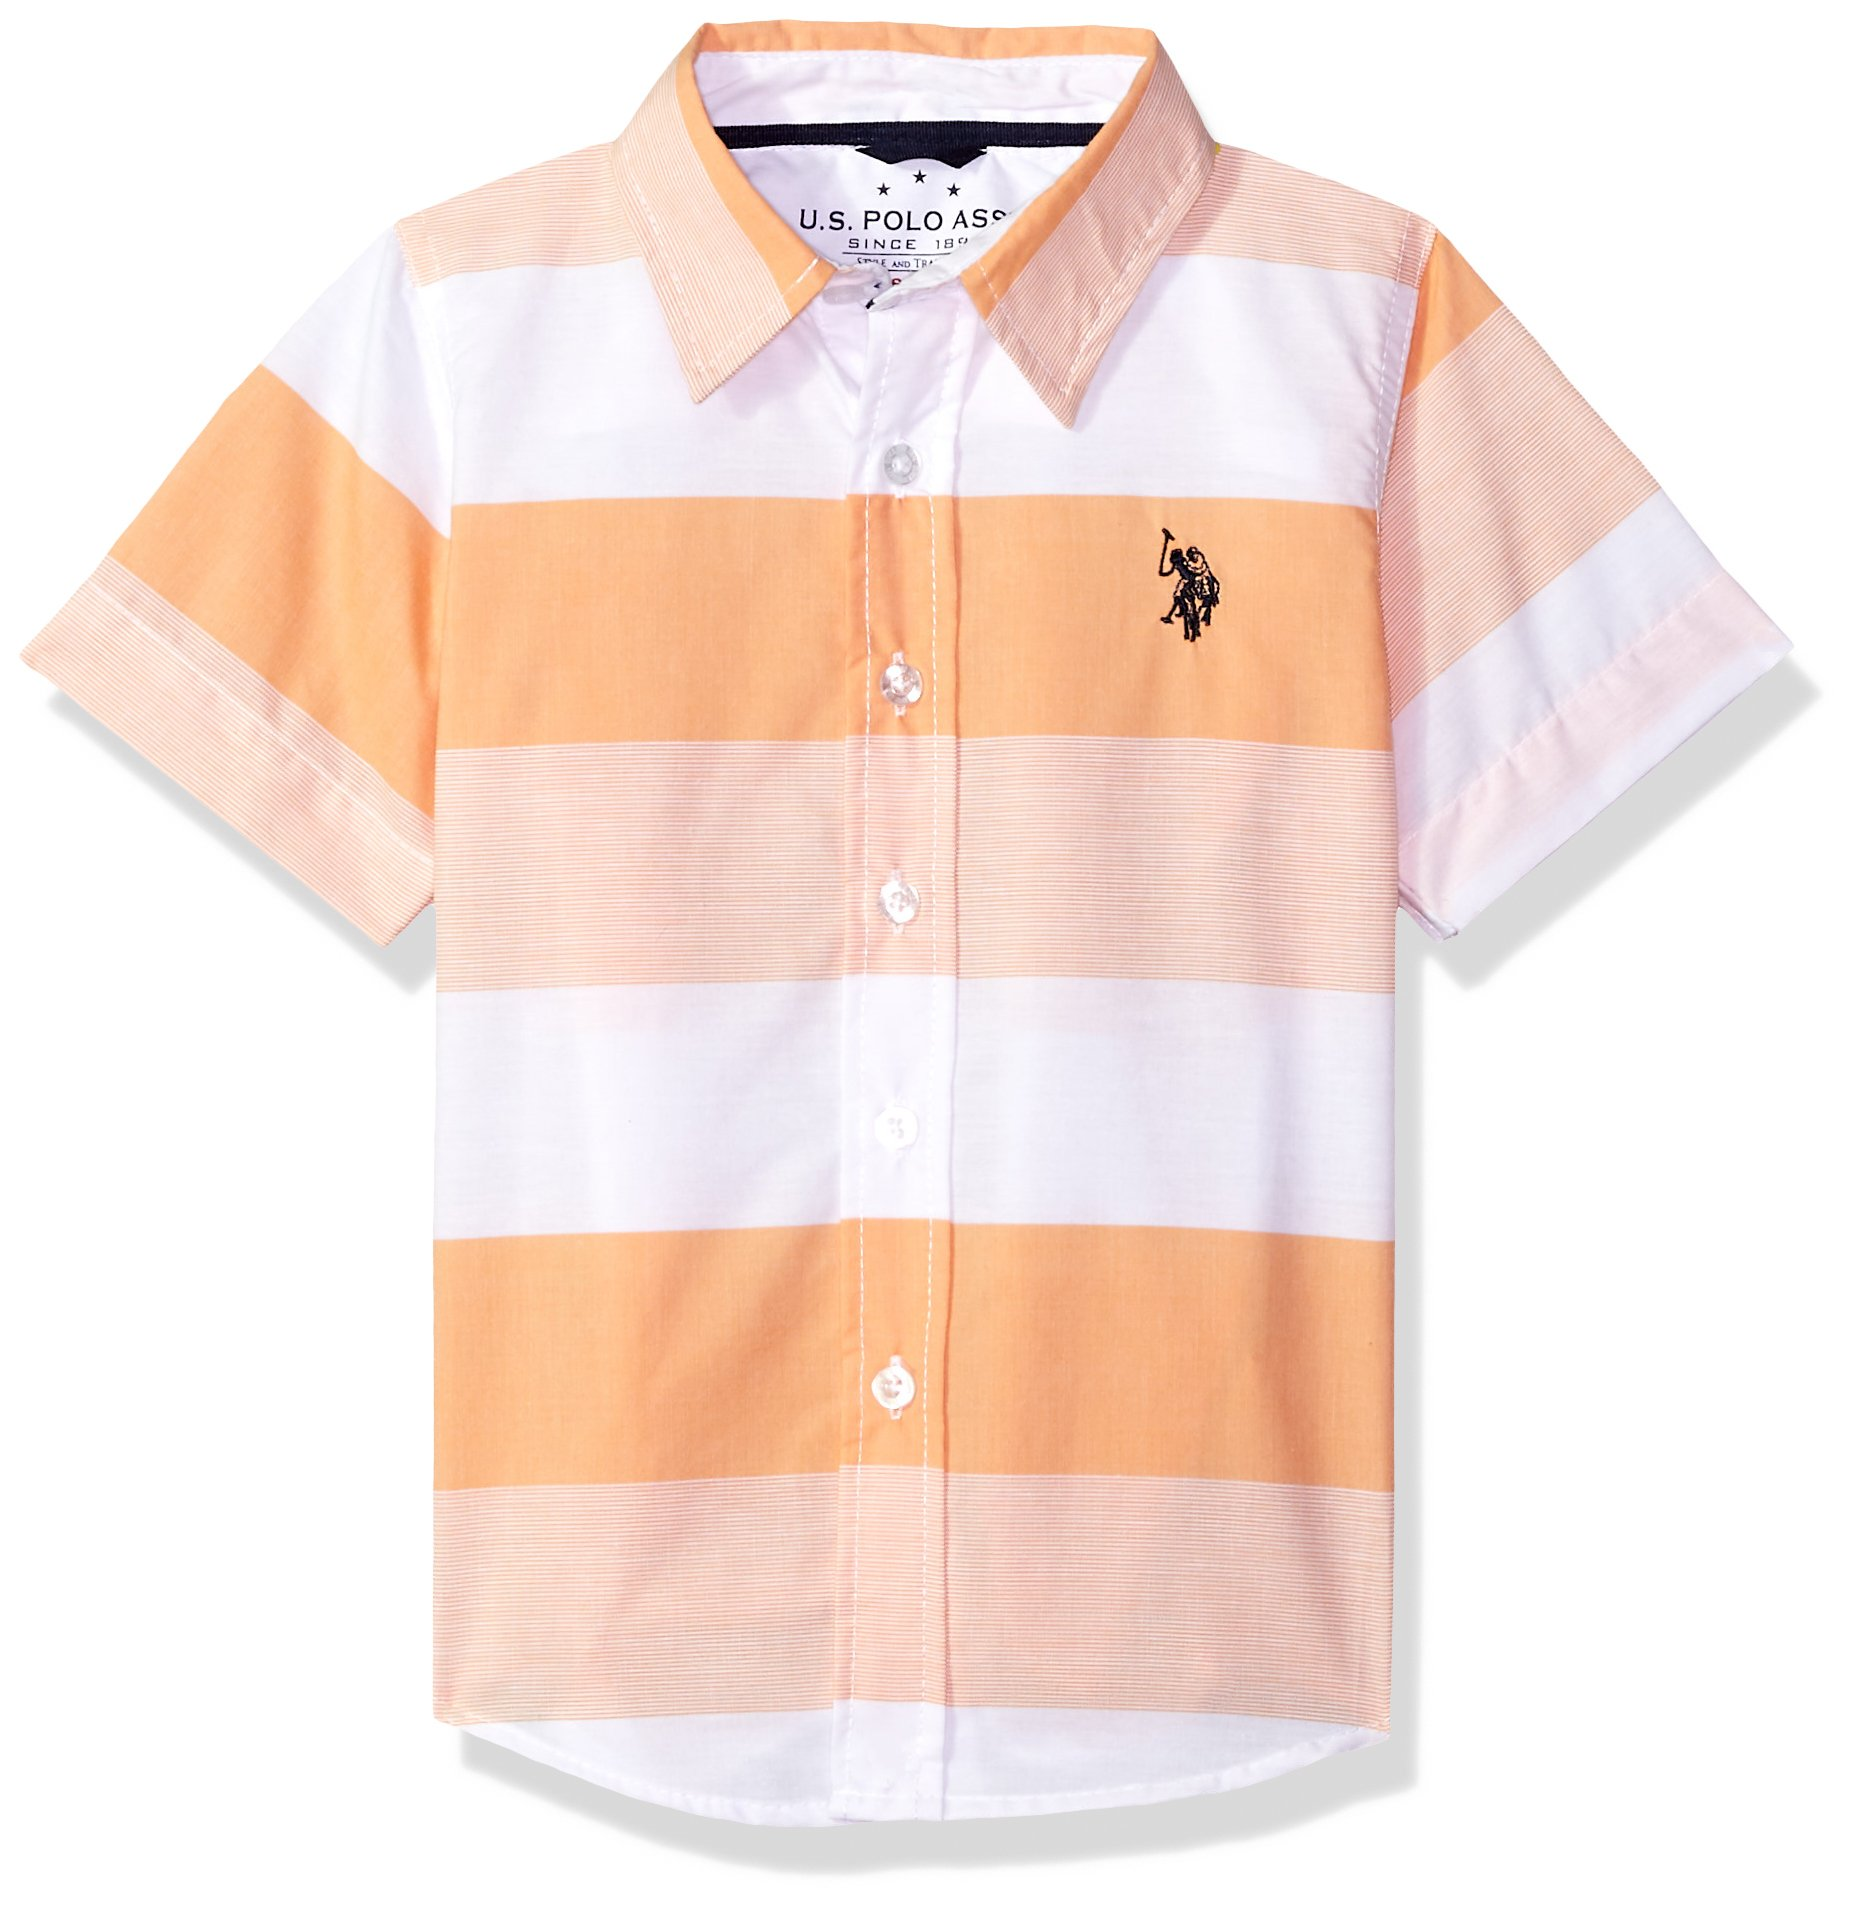 U.S. Polo Assn. Toddler Boys' Short Sleeve Striped Sport Shirt, White Stripes Orange Sand, 3T